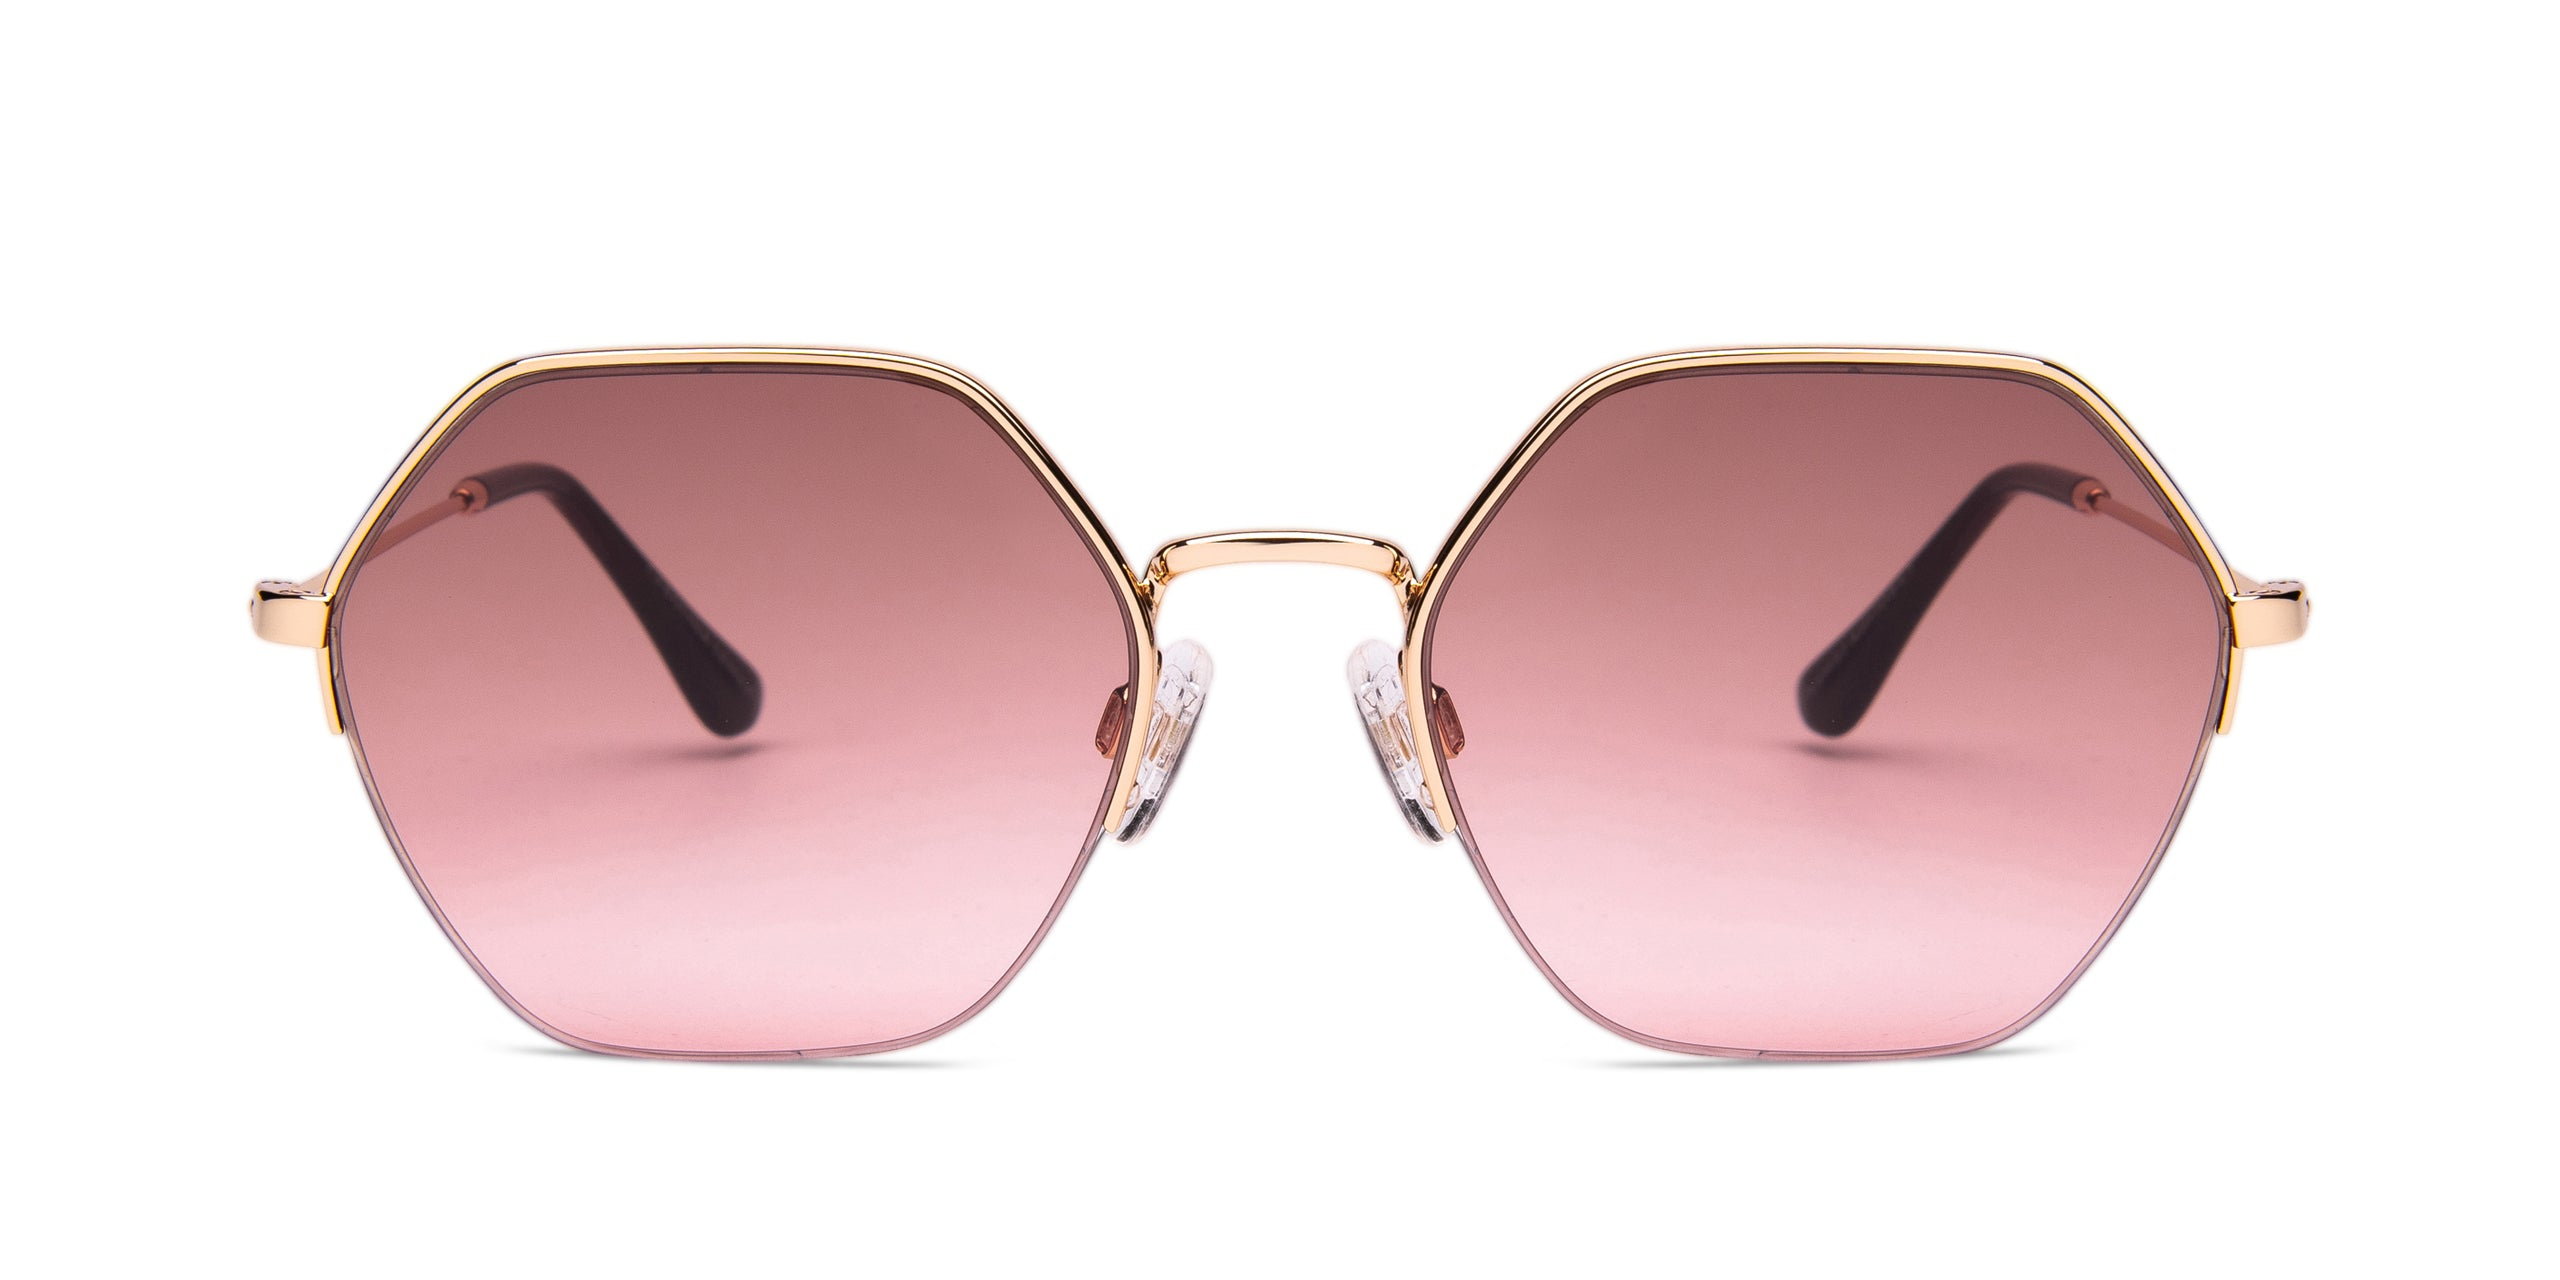 FRAME Gold LENS Gradient Brown to Pink